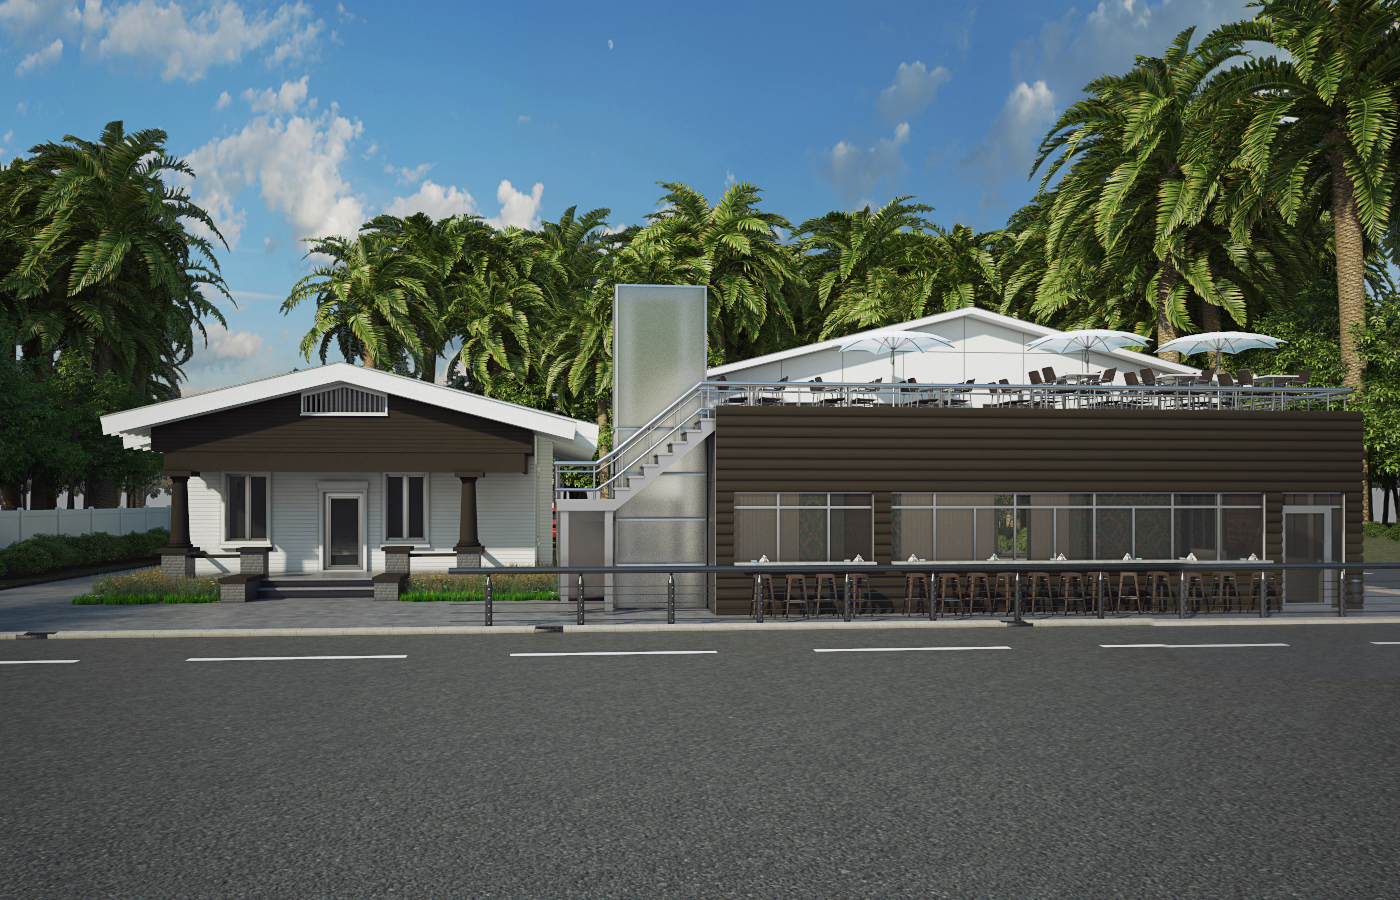 New Independent Drugstore Caf Coming To Seminole Heights In November